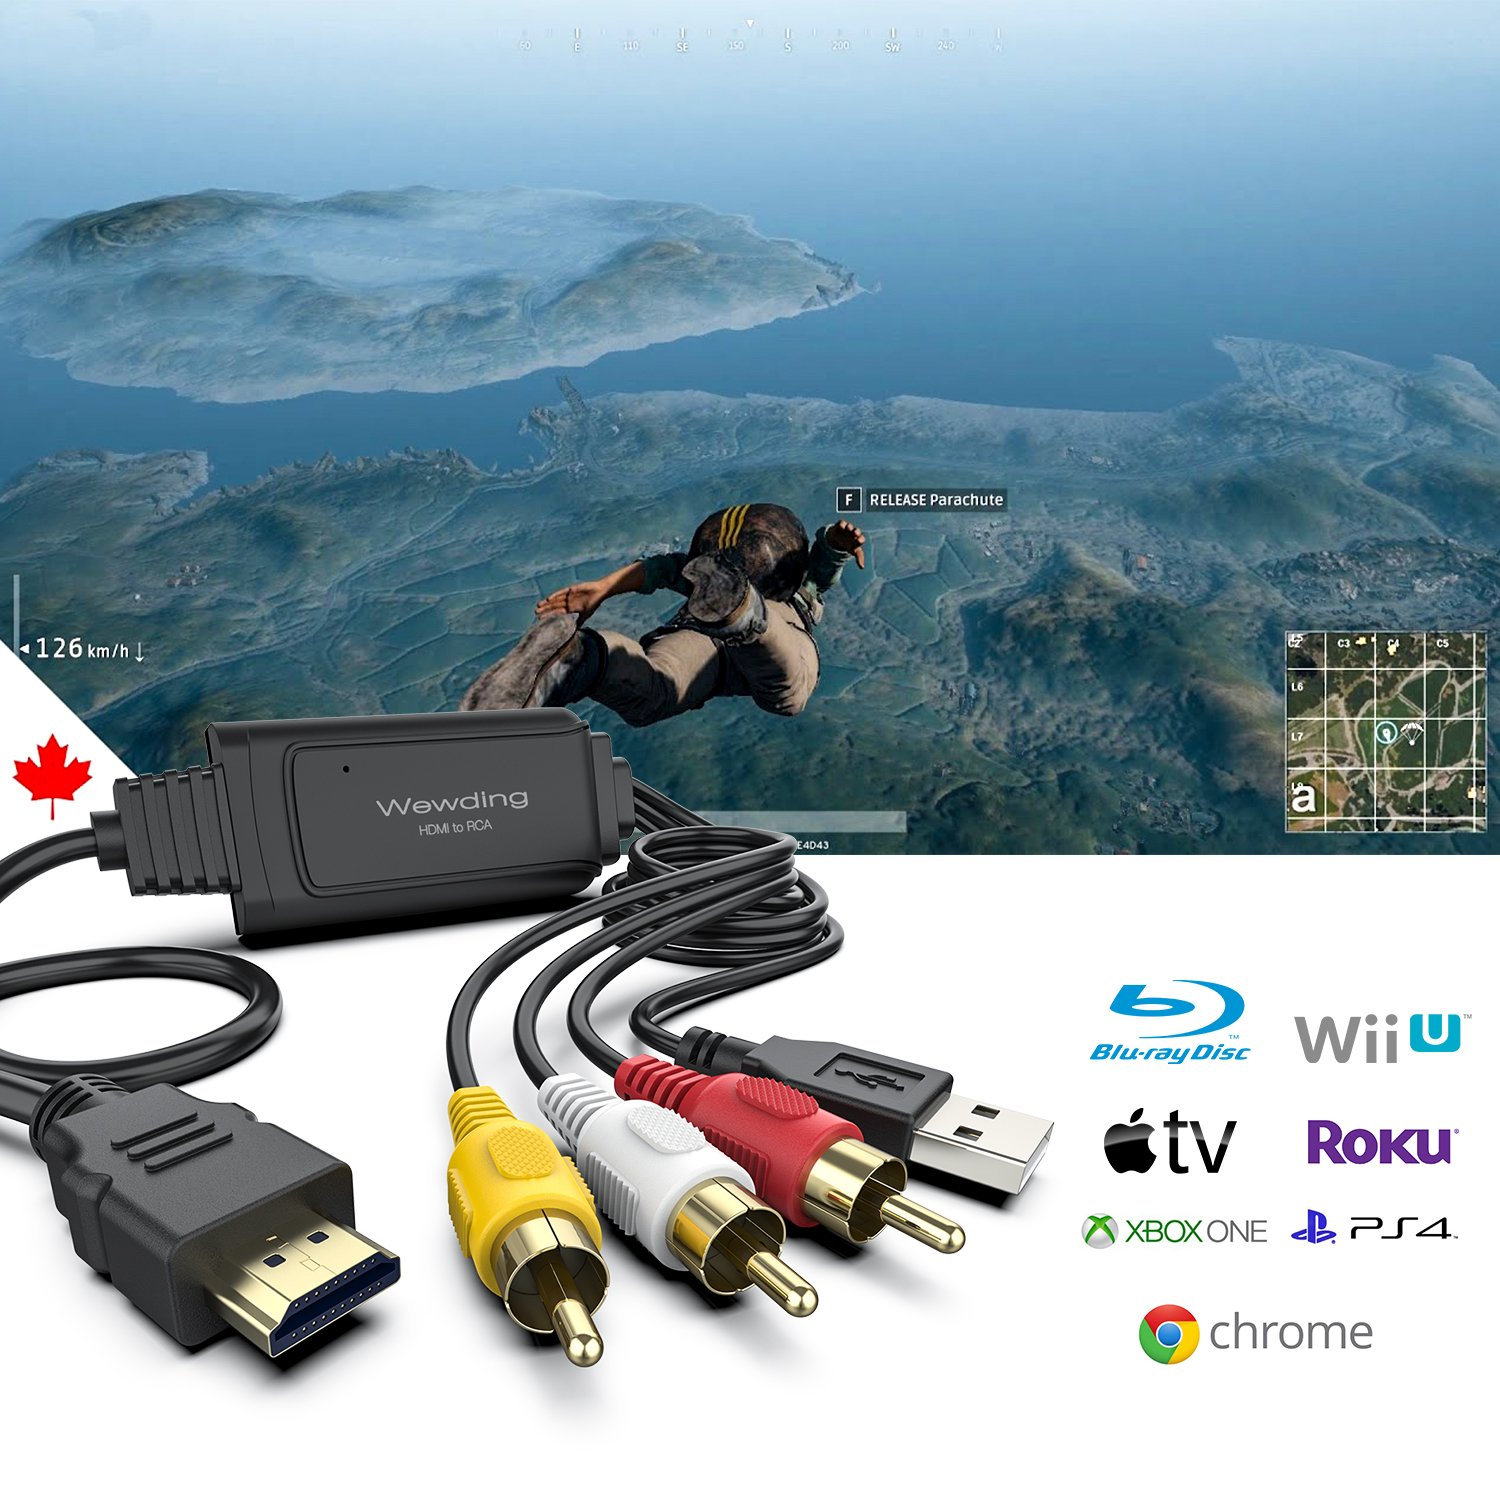 Amazon.com: HDMI to RCA Cable – Hassle Free - Converts Digital HDMI ...